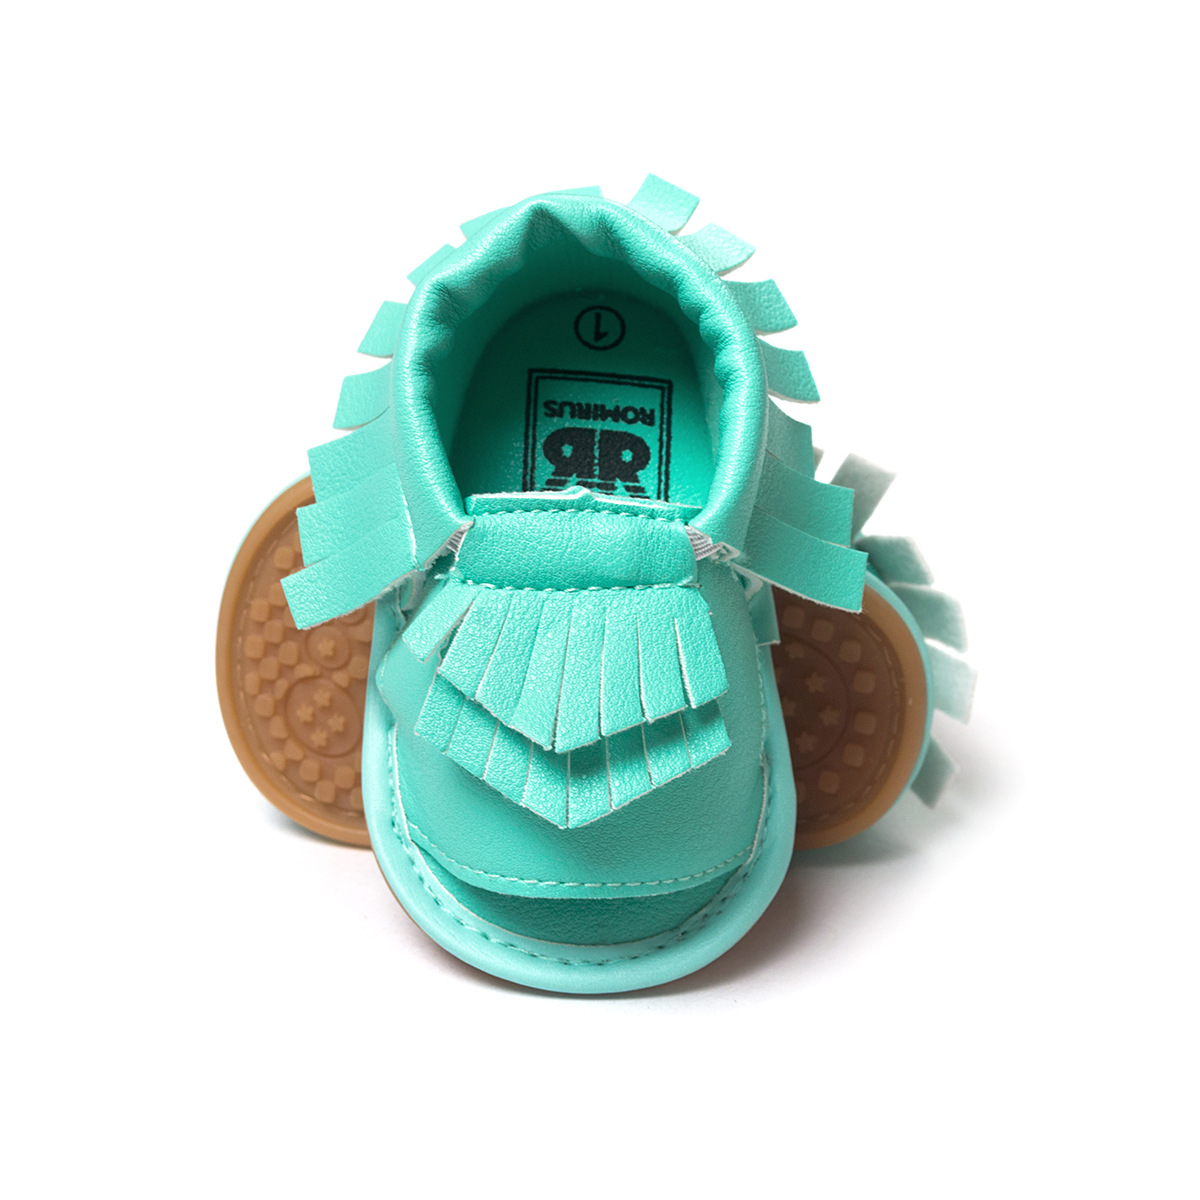 2018 New Baby Moccasins Fashion Fringe Baby First Walkers Toddler Shoes for Newborn Boy Girl Baby Fashion Fringe Toddler Shoes